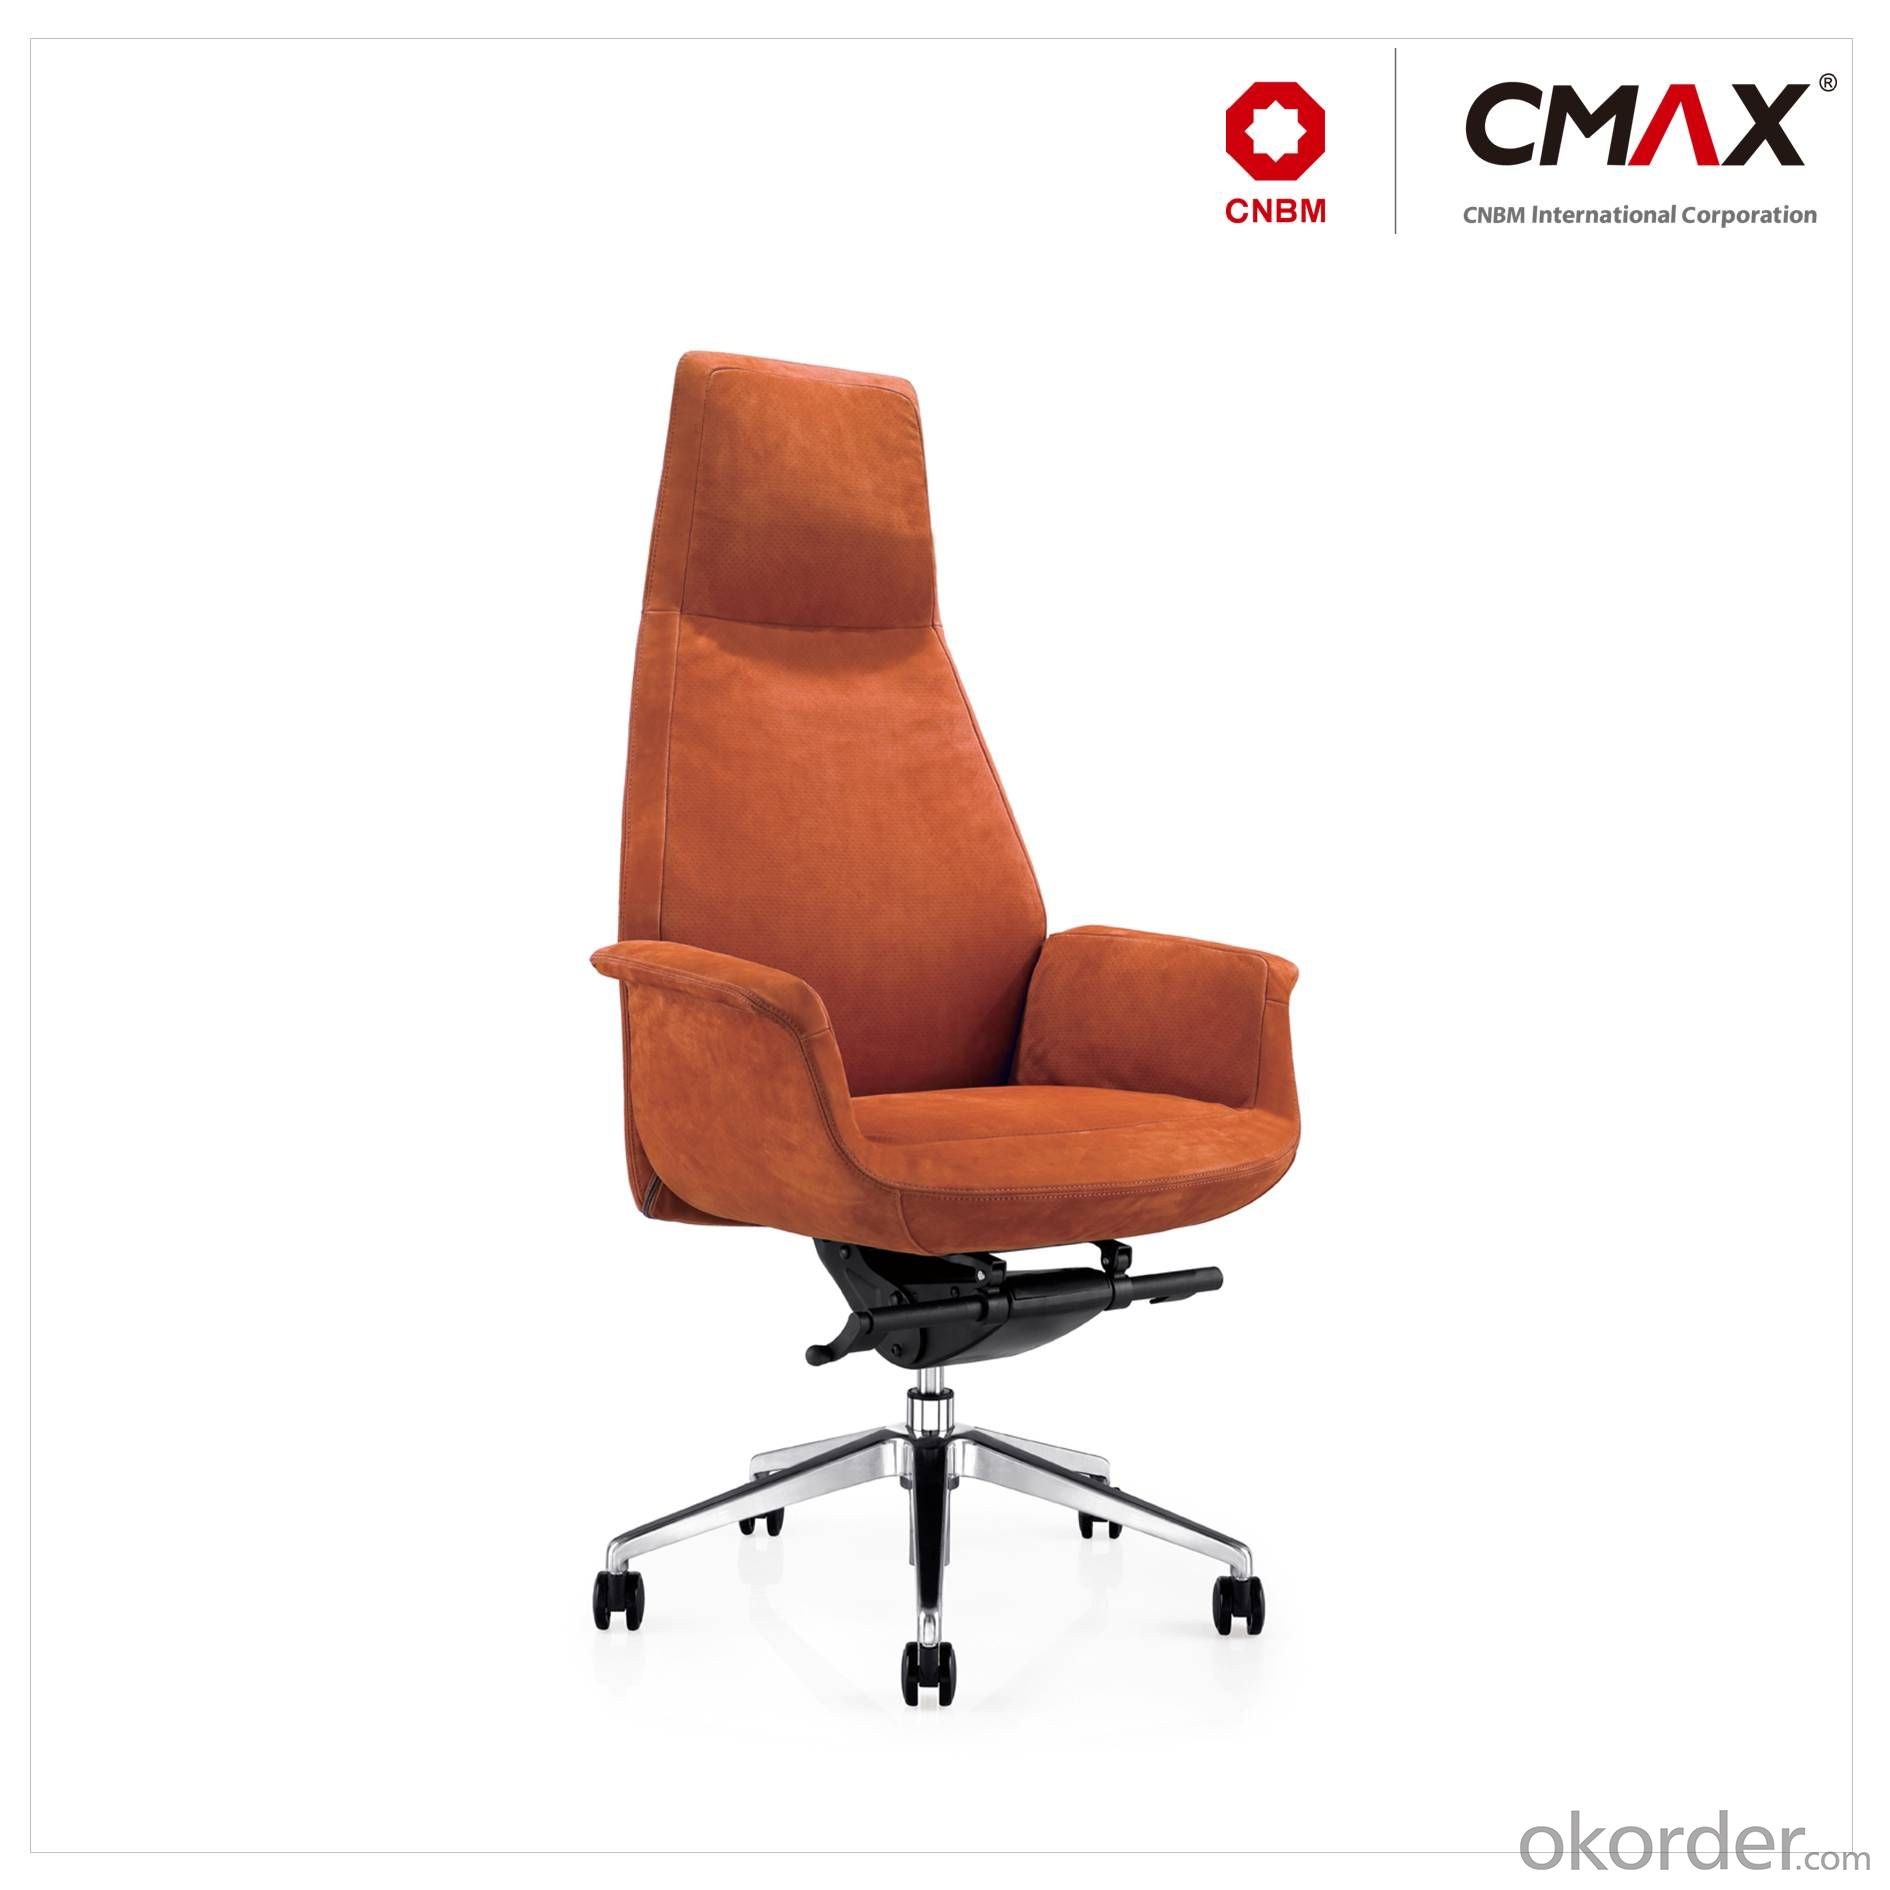 Executive Chair Modern Office Leather Chair Cmax-CH-F198